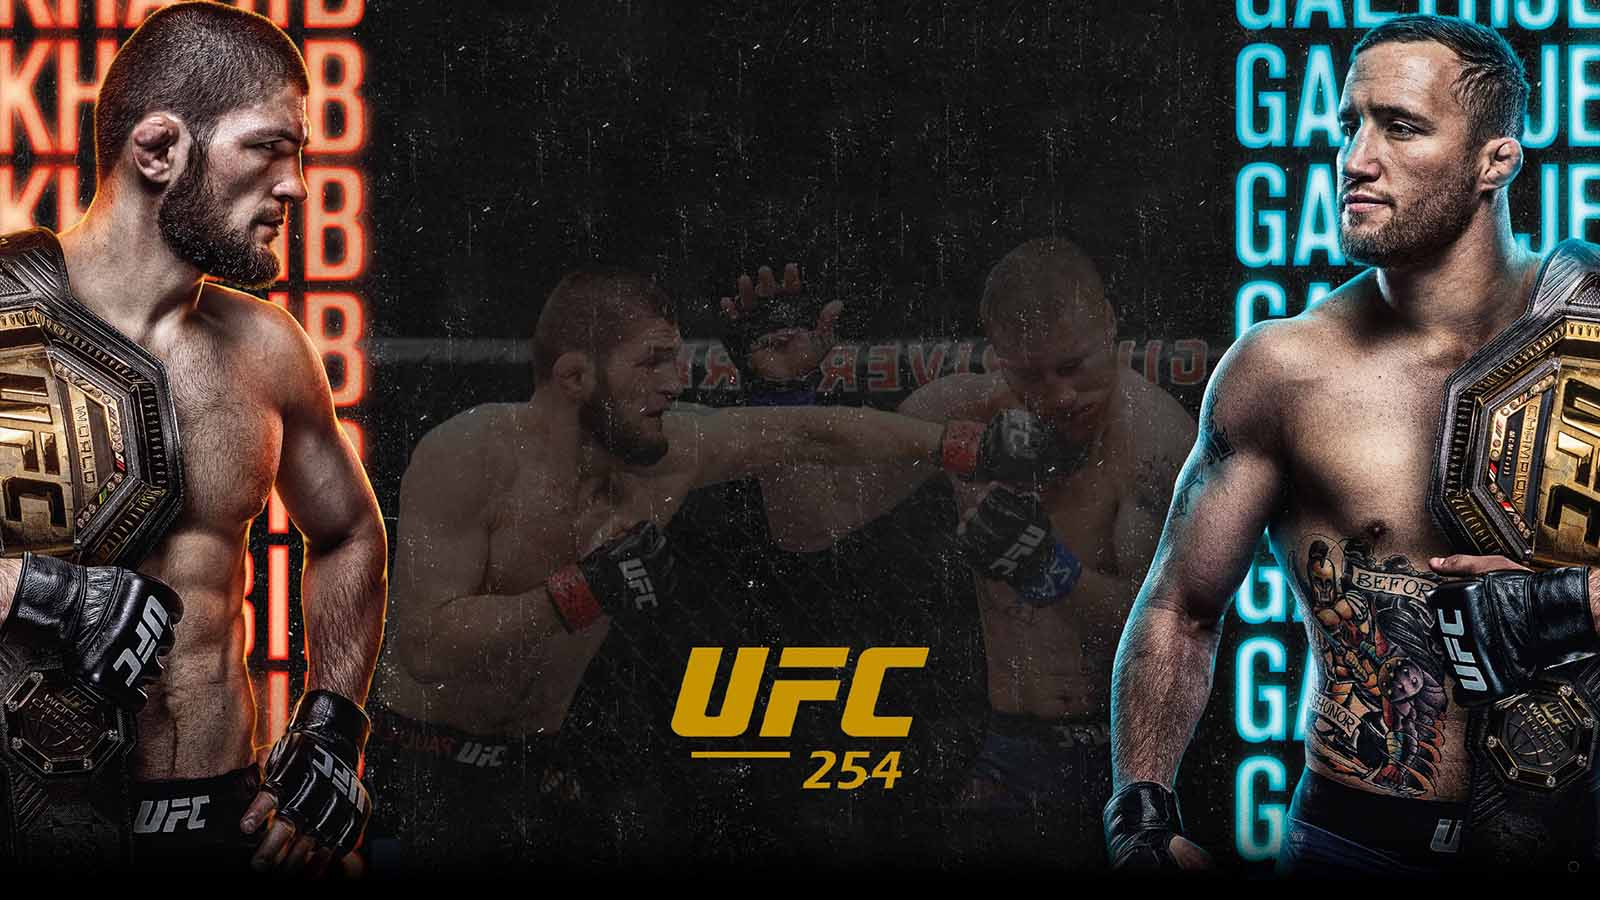 Get the best places to stream the UFC 254 main card fights live. We're here to guide you through all your options.